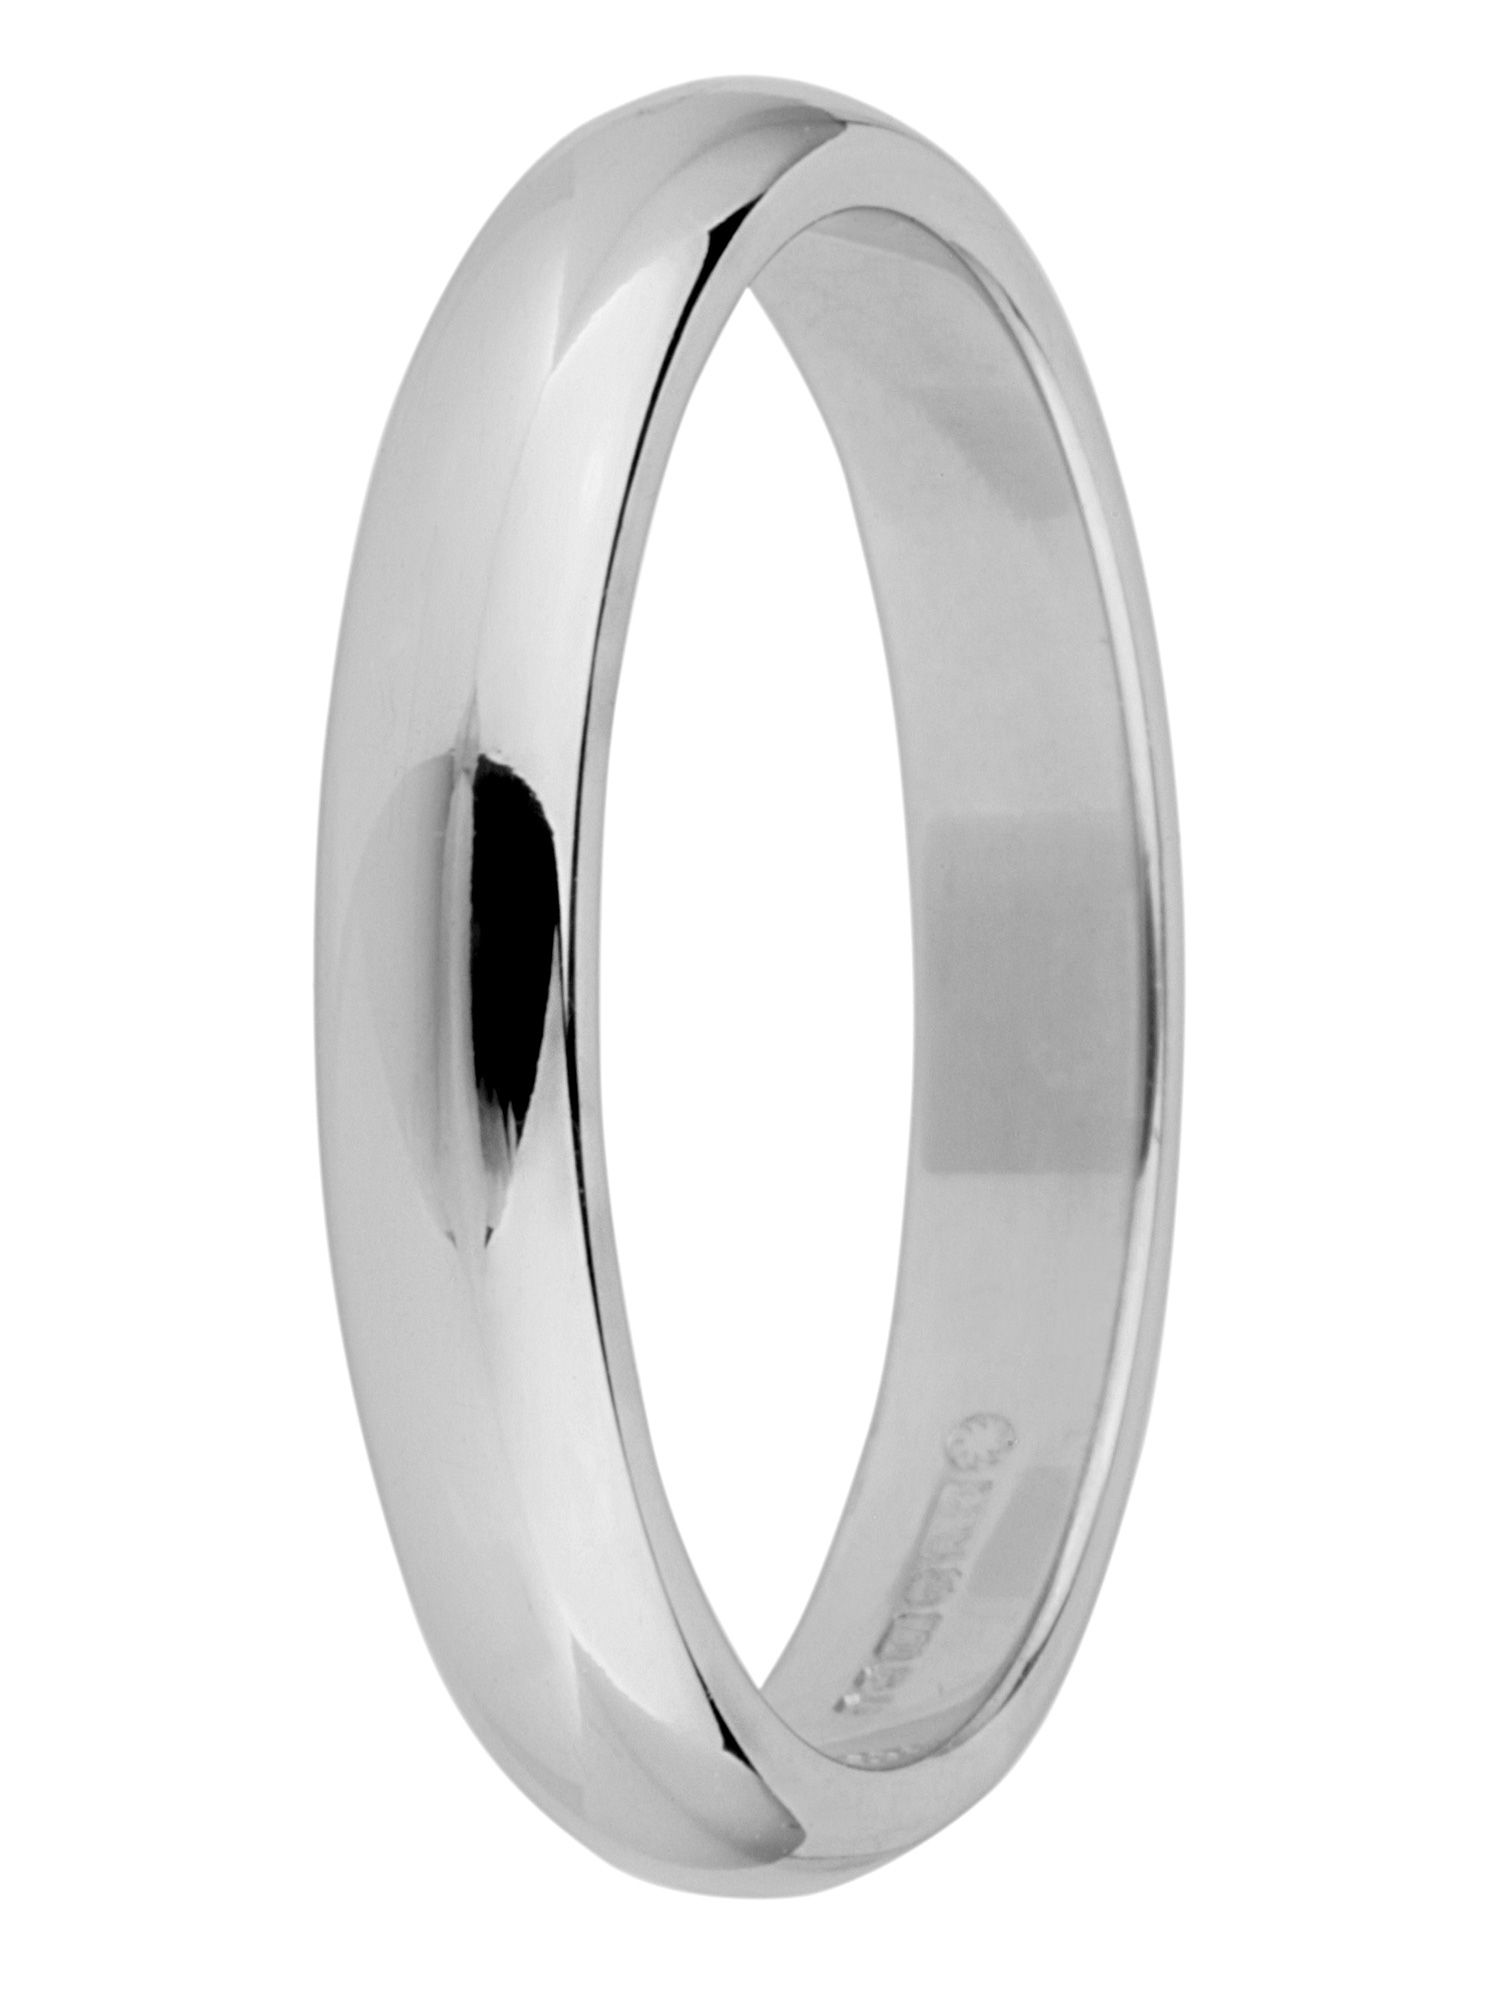 Brides 18ct gold heavy court 3mm wedding ring - White Gold